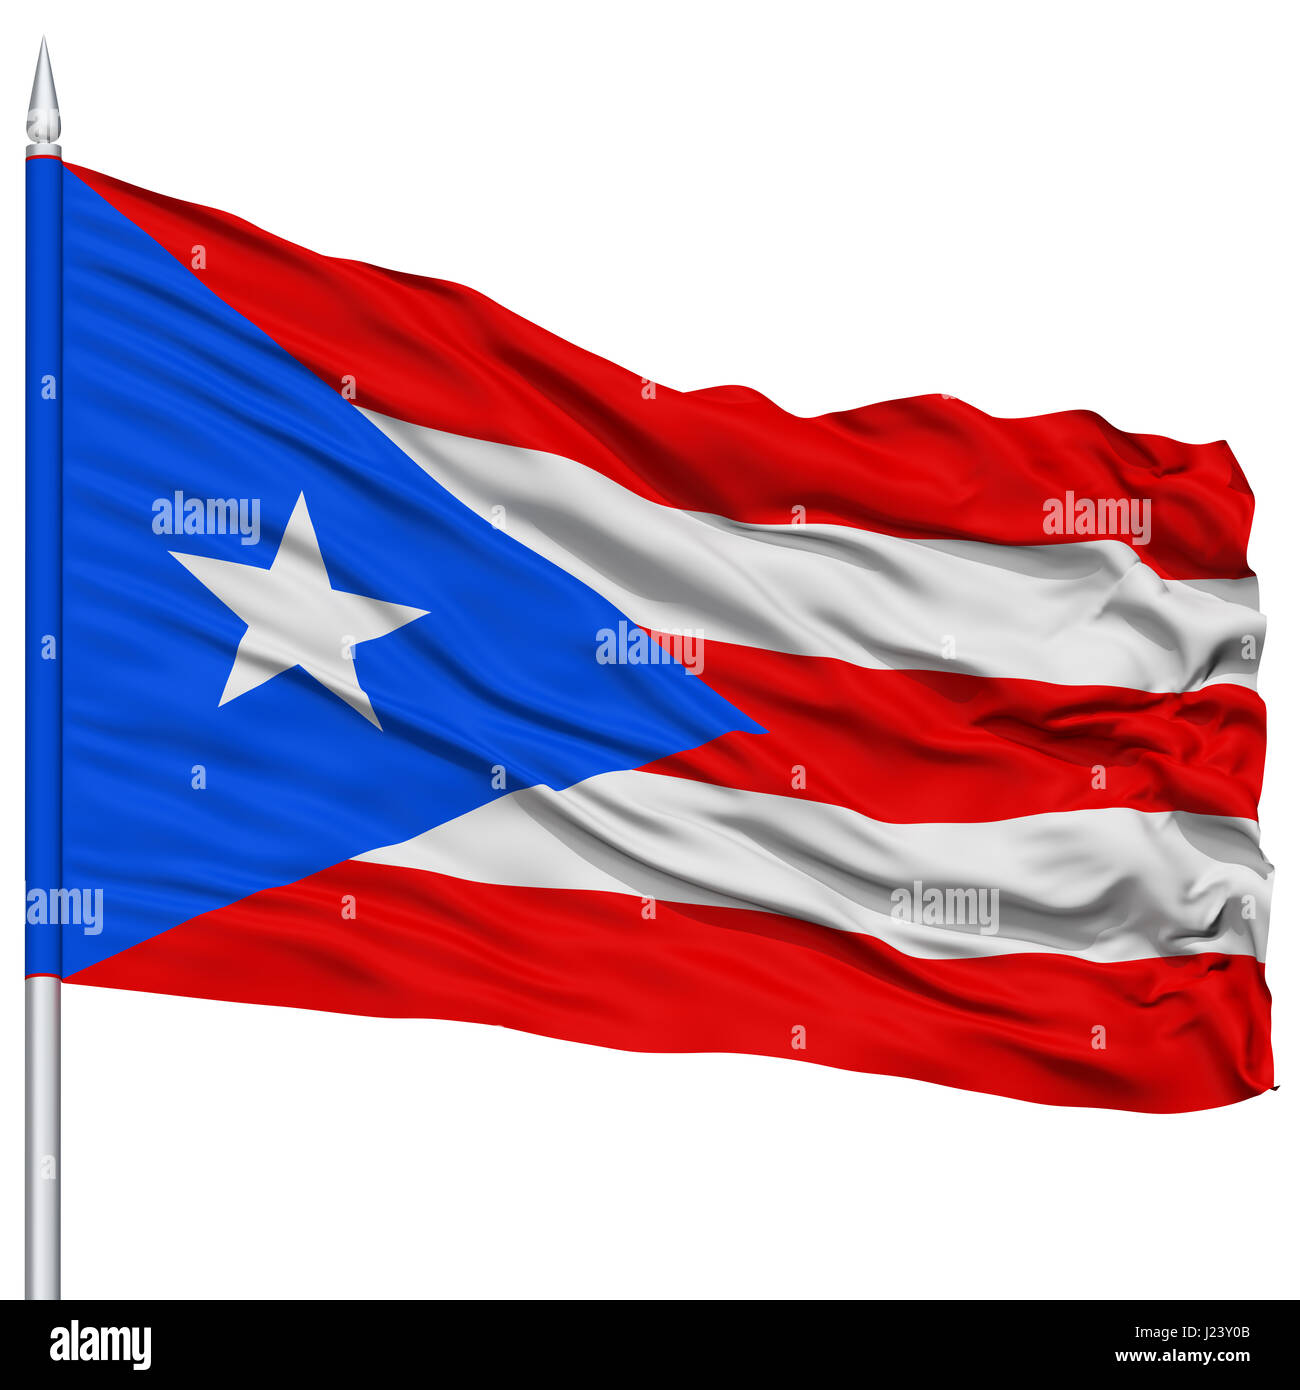 Puerto rico flag on flagpole stock photo royalty free image puerto rico flag on flagpole biocorpaavc Image collections